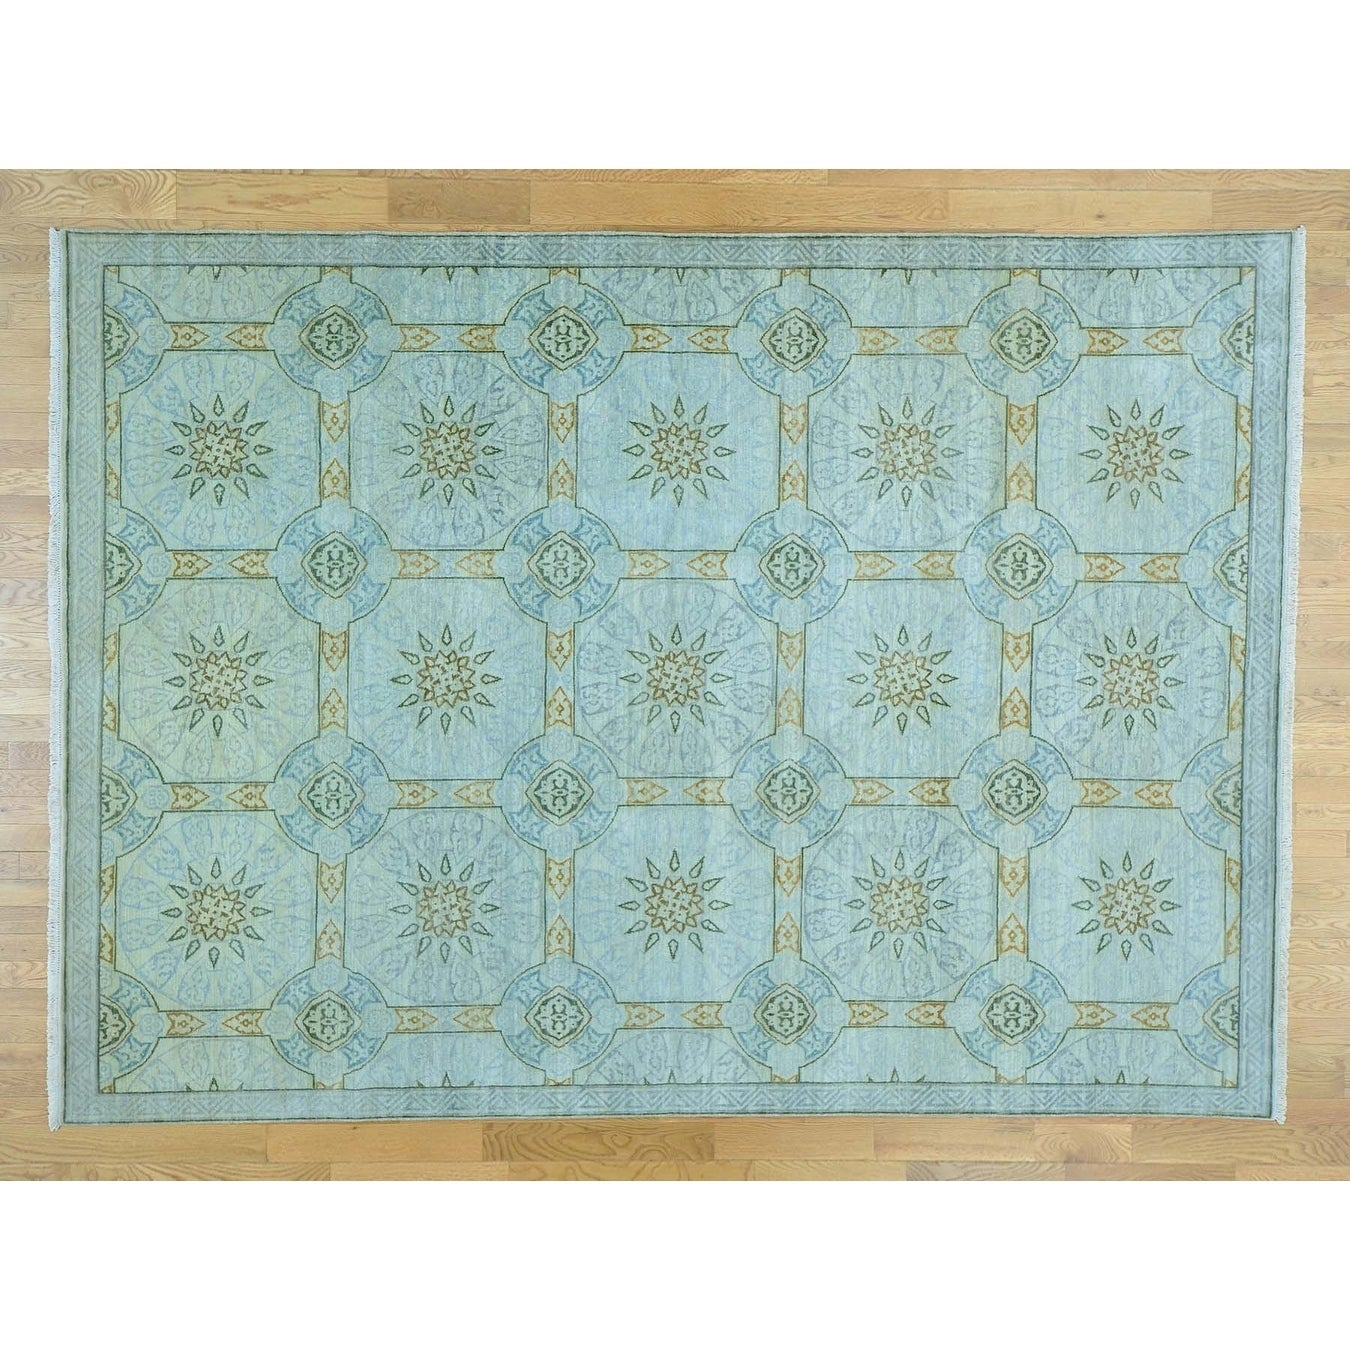 Hand Knotted Blue Arts And Crafts with Wool Oriental Rug - 810 x 123